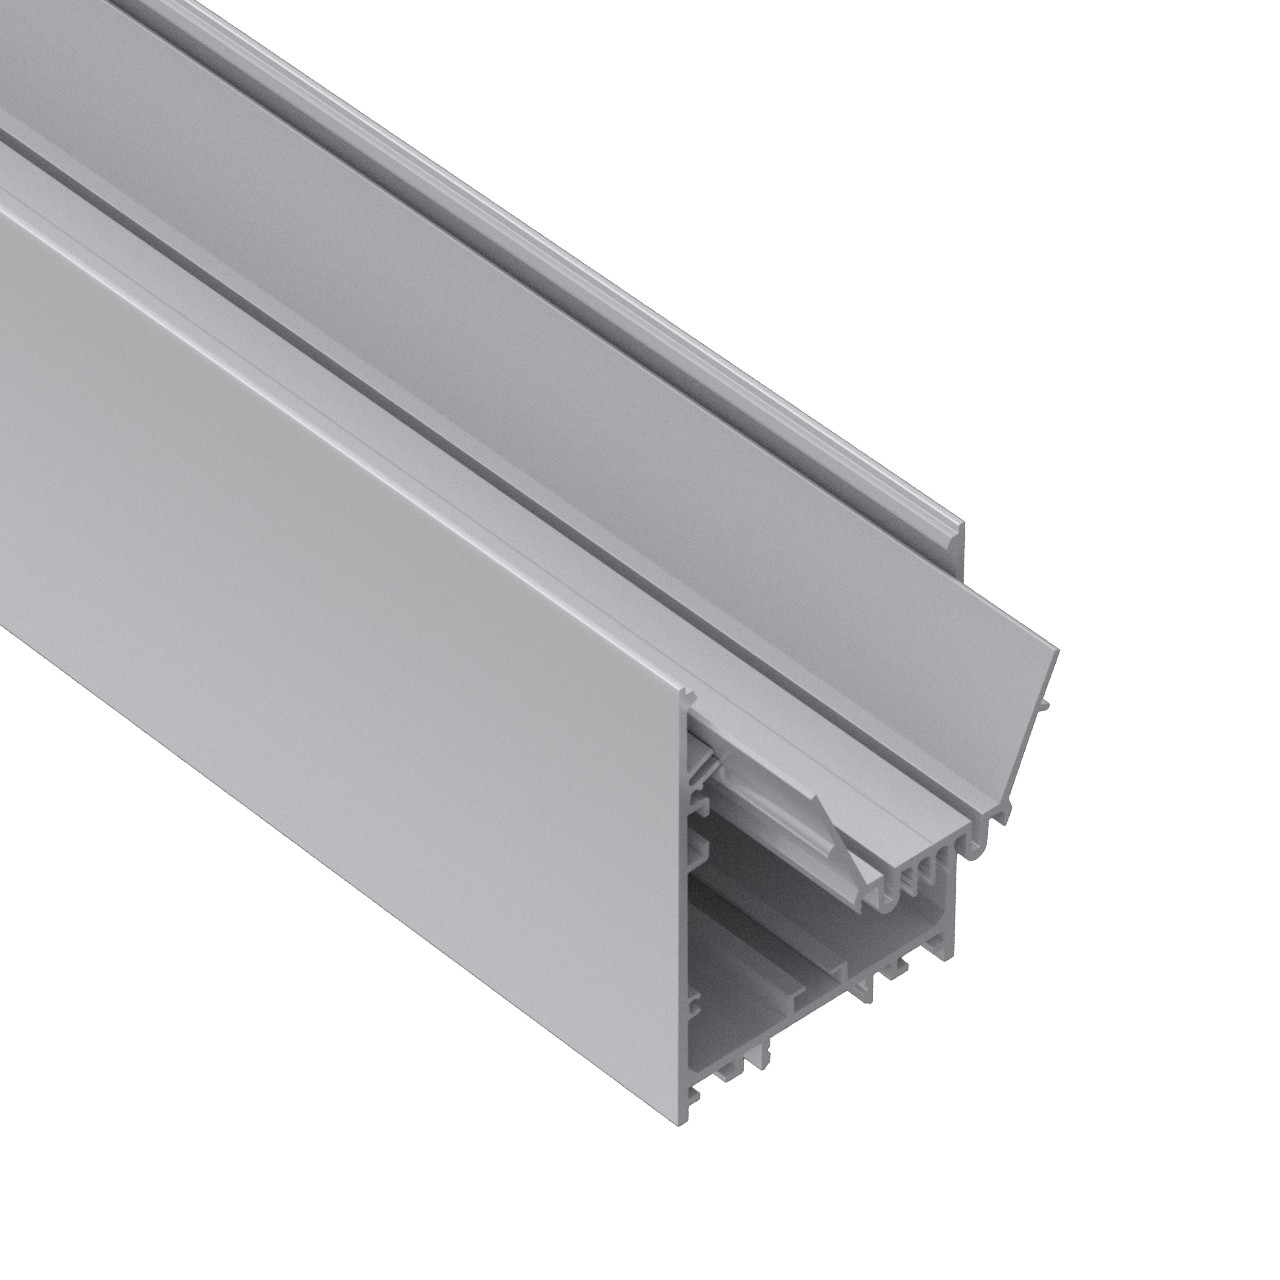 P60 populaire 60mm haut / bas suspendu profil architectural conduit 60x90mm